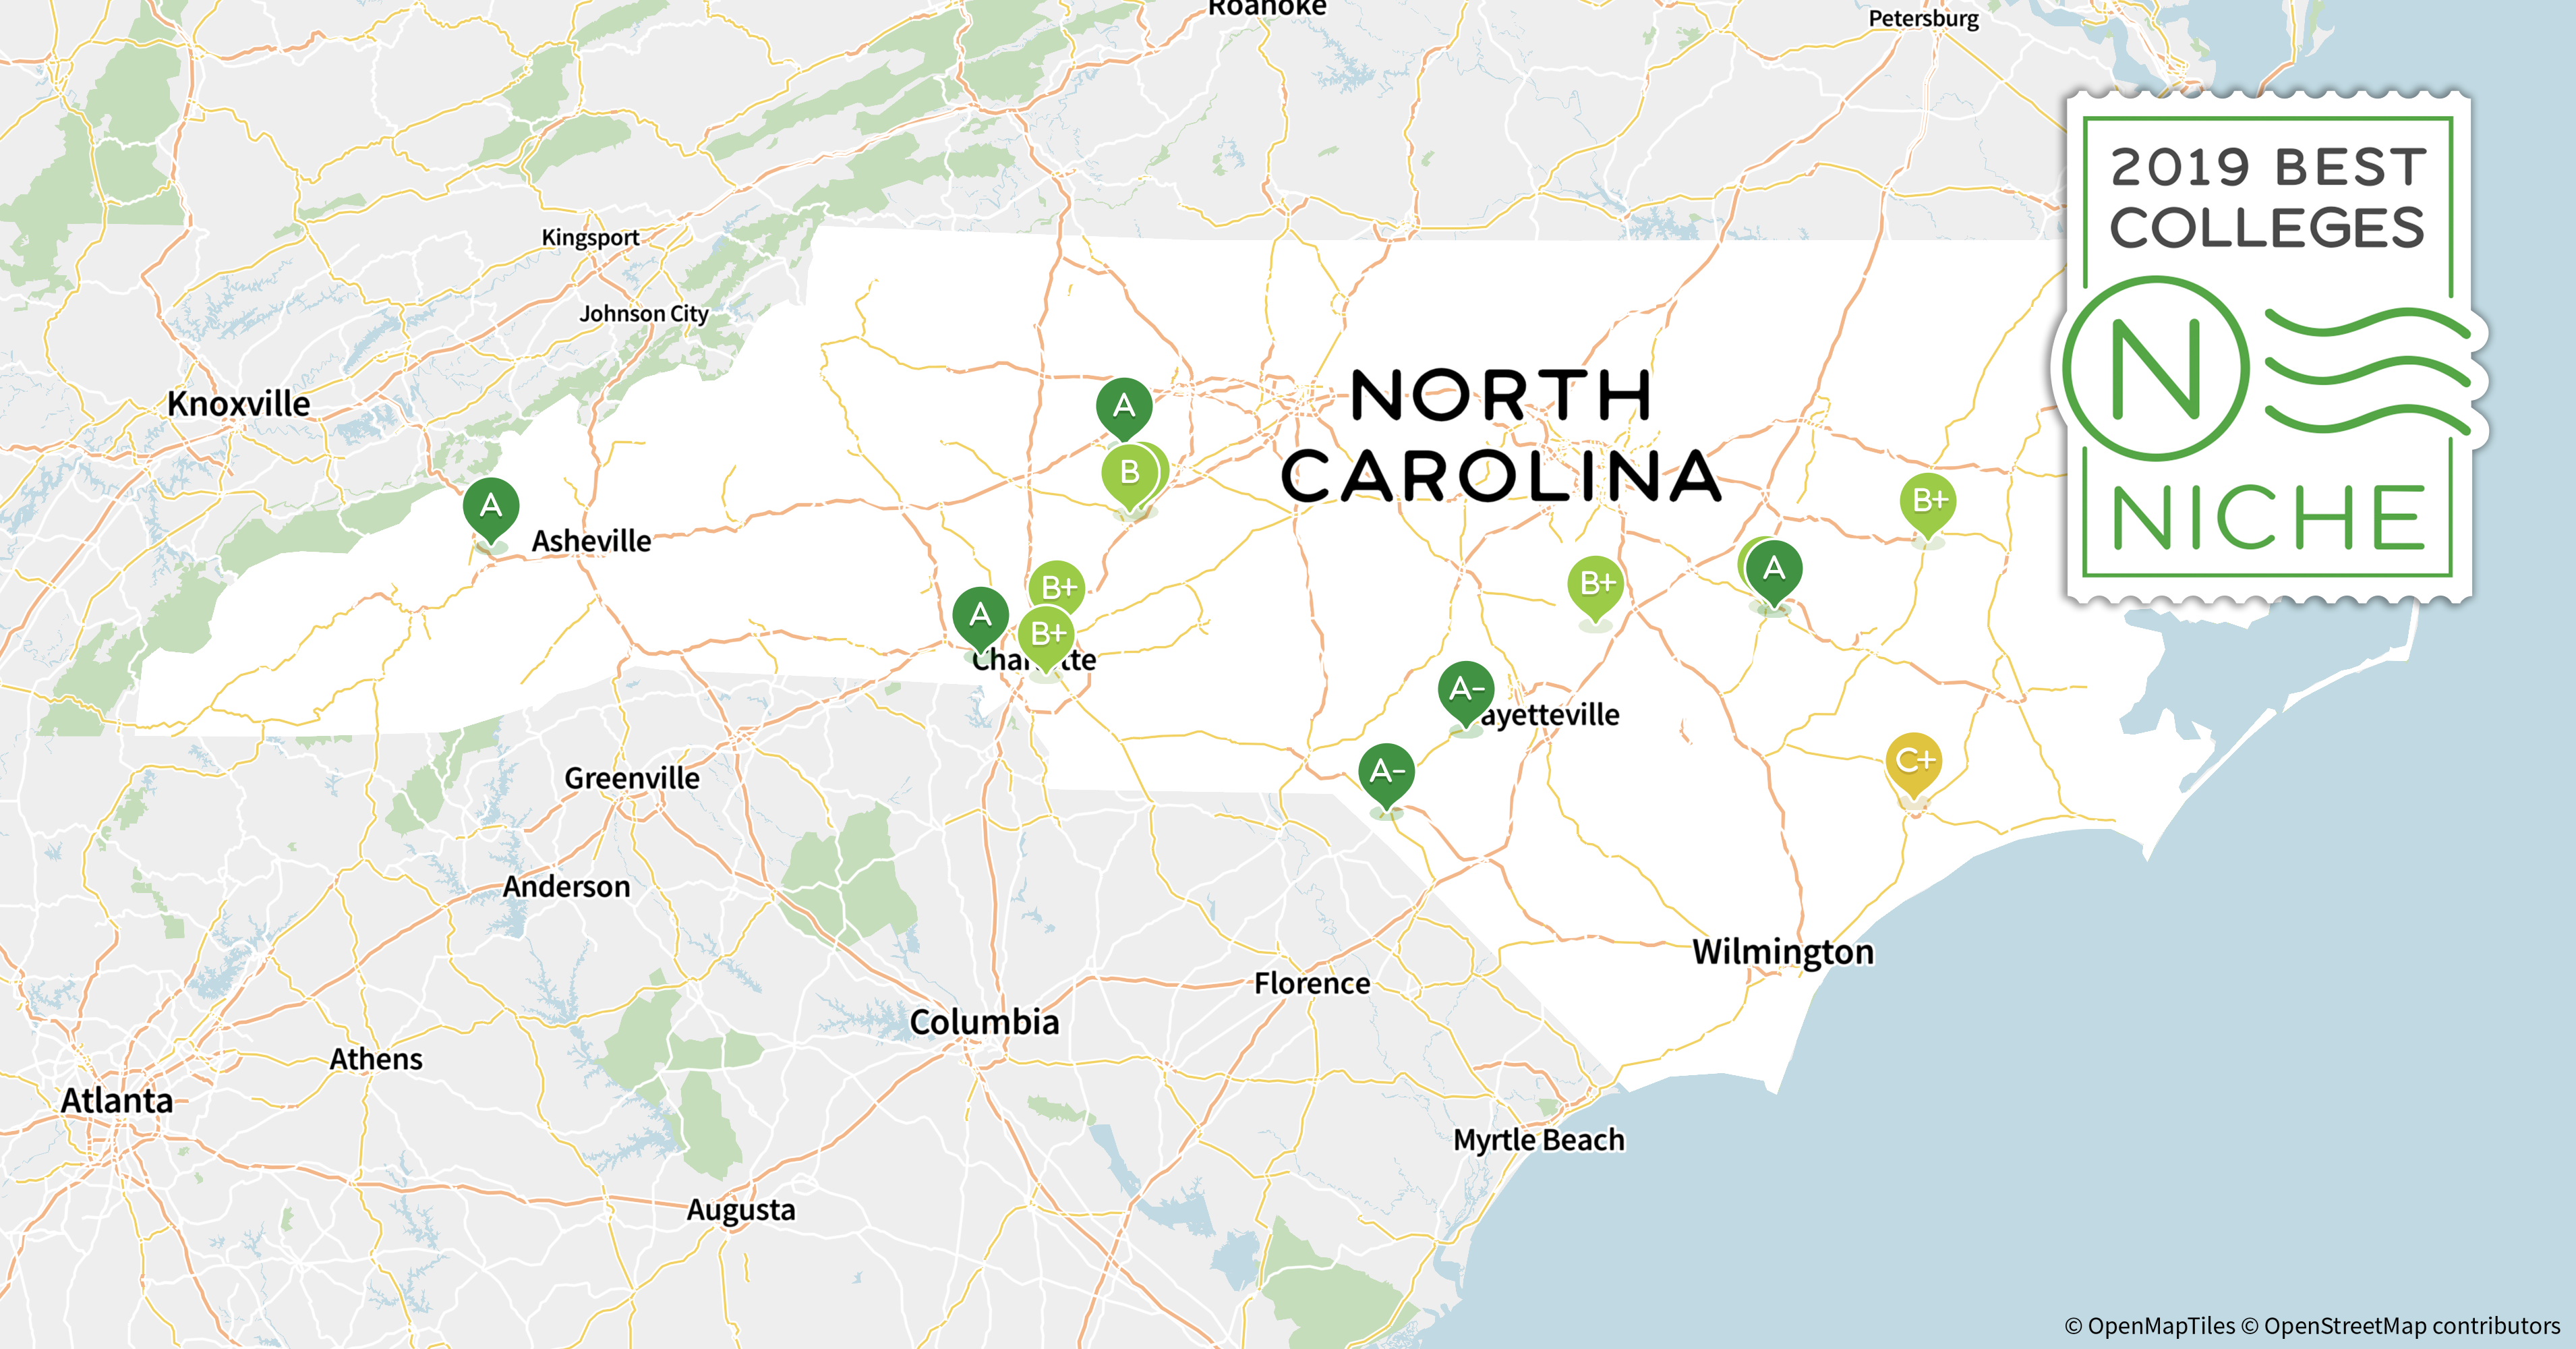 2019 Best Nursing Schools in North Carolina - Niche